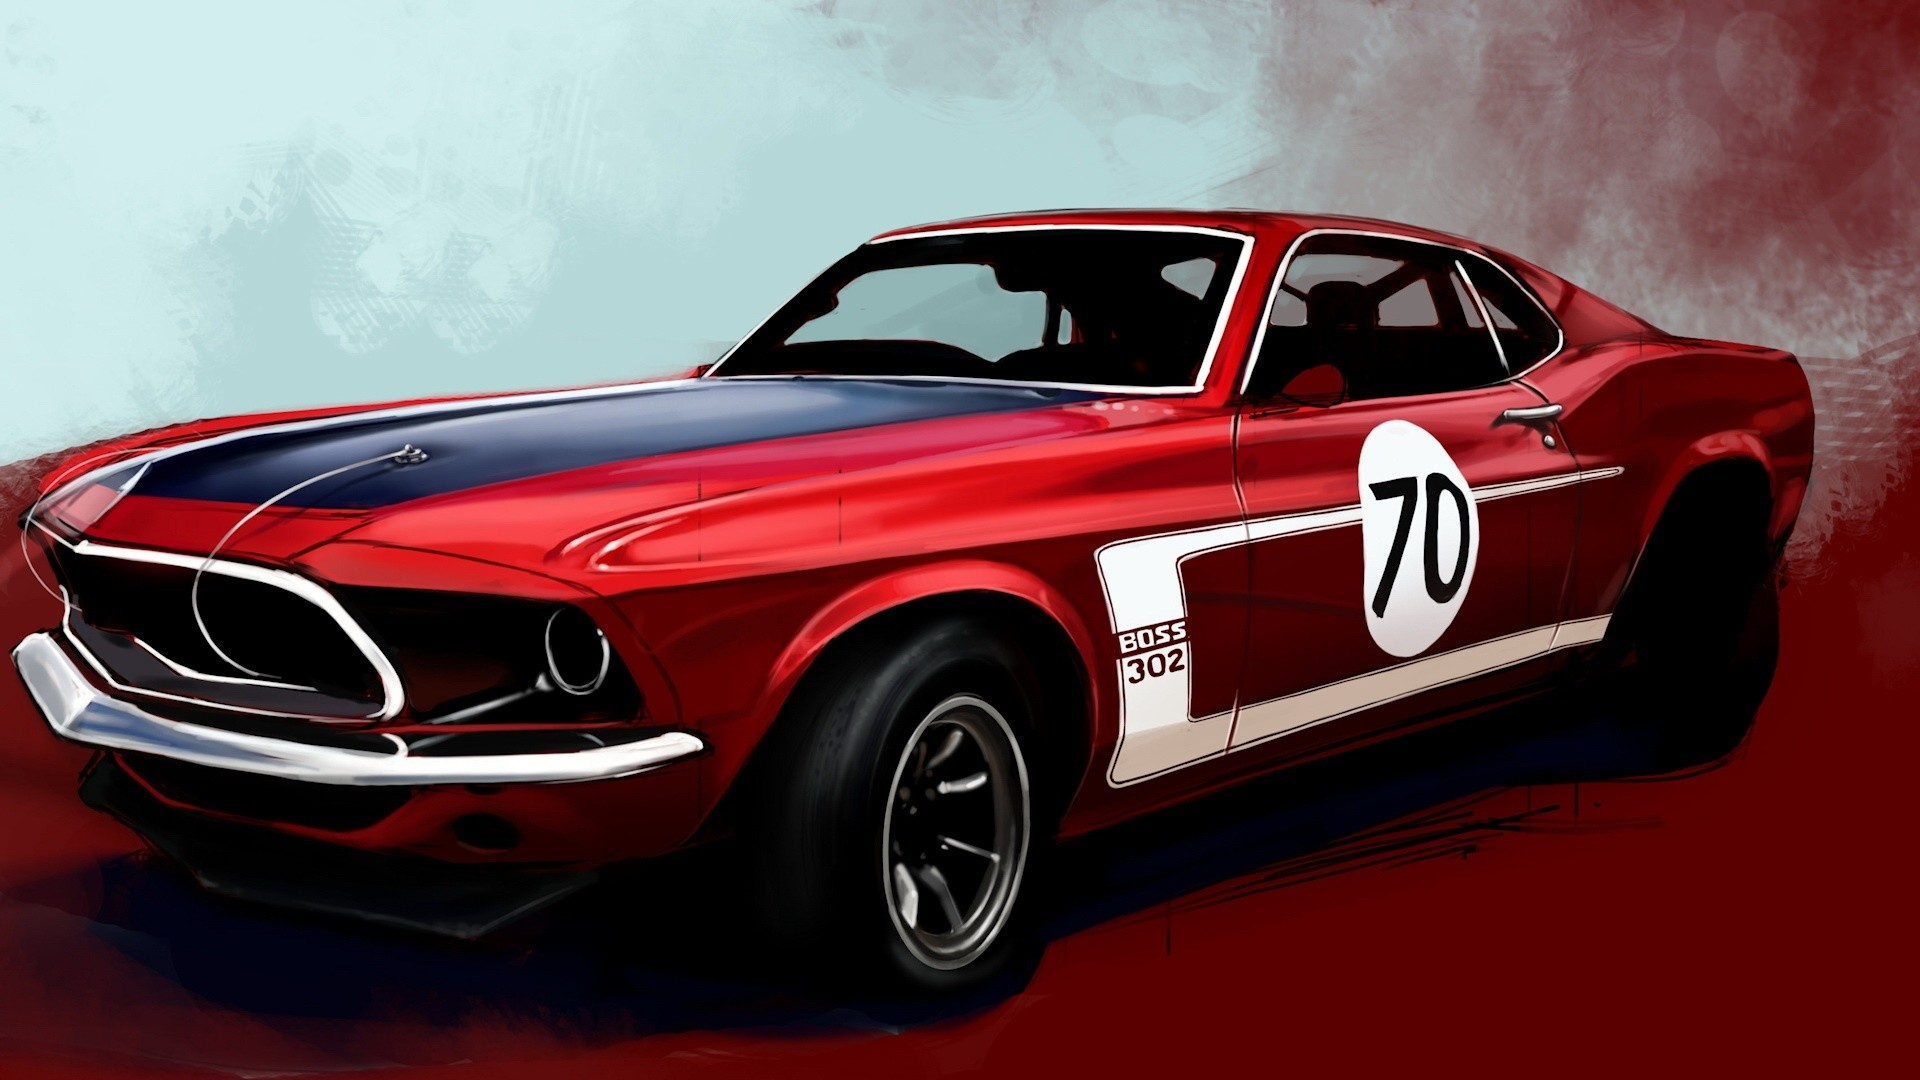 Drift Car Wallpaper 1920x1080 Ford Mustang Wallpapers 68 Pictures